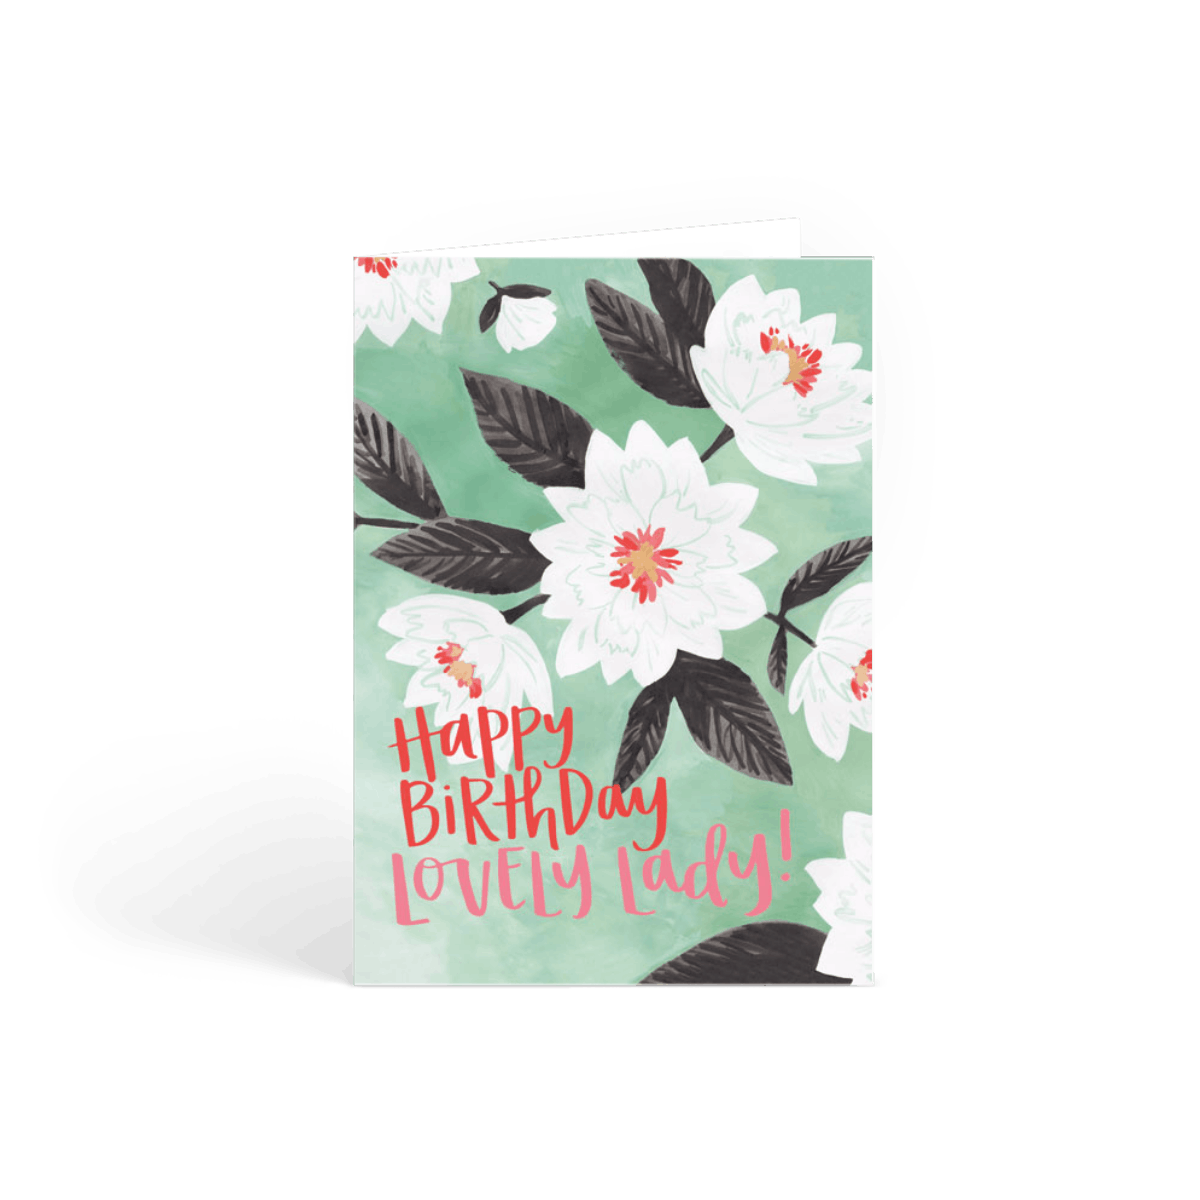 Https%3a%2f%2fwww.papier.com%2fproduct image%2f14224%2f2%2flovely floral birthday 3798 front 1479818027.png?ixlib=rb 1.1